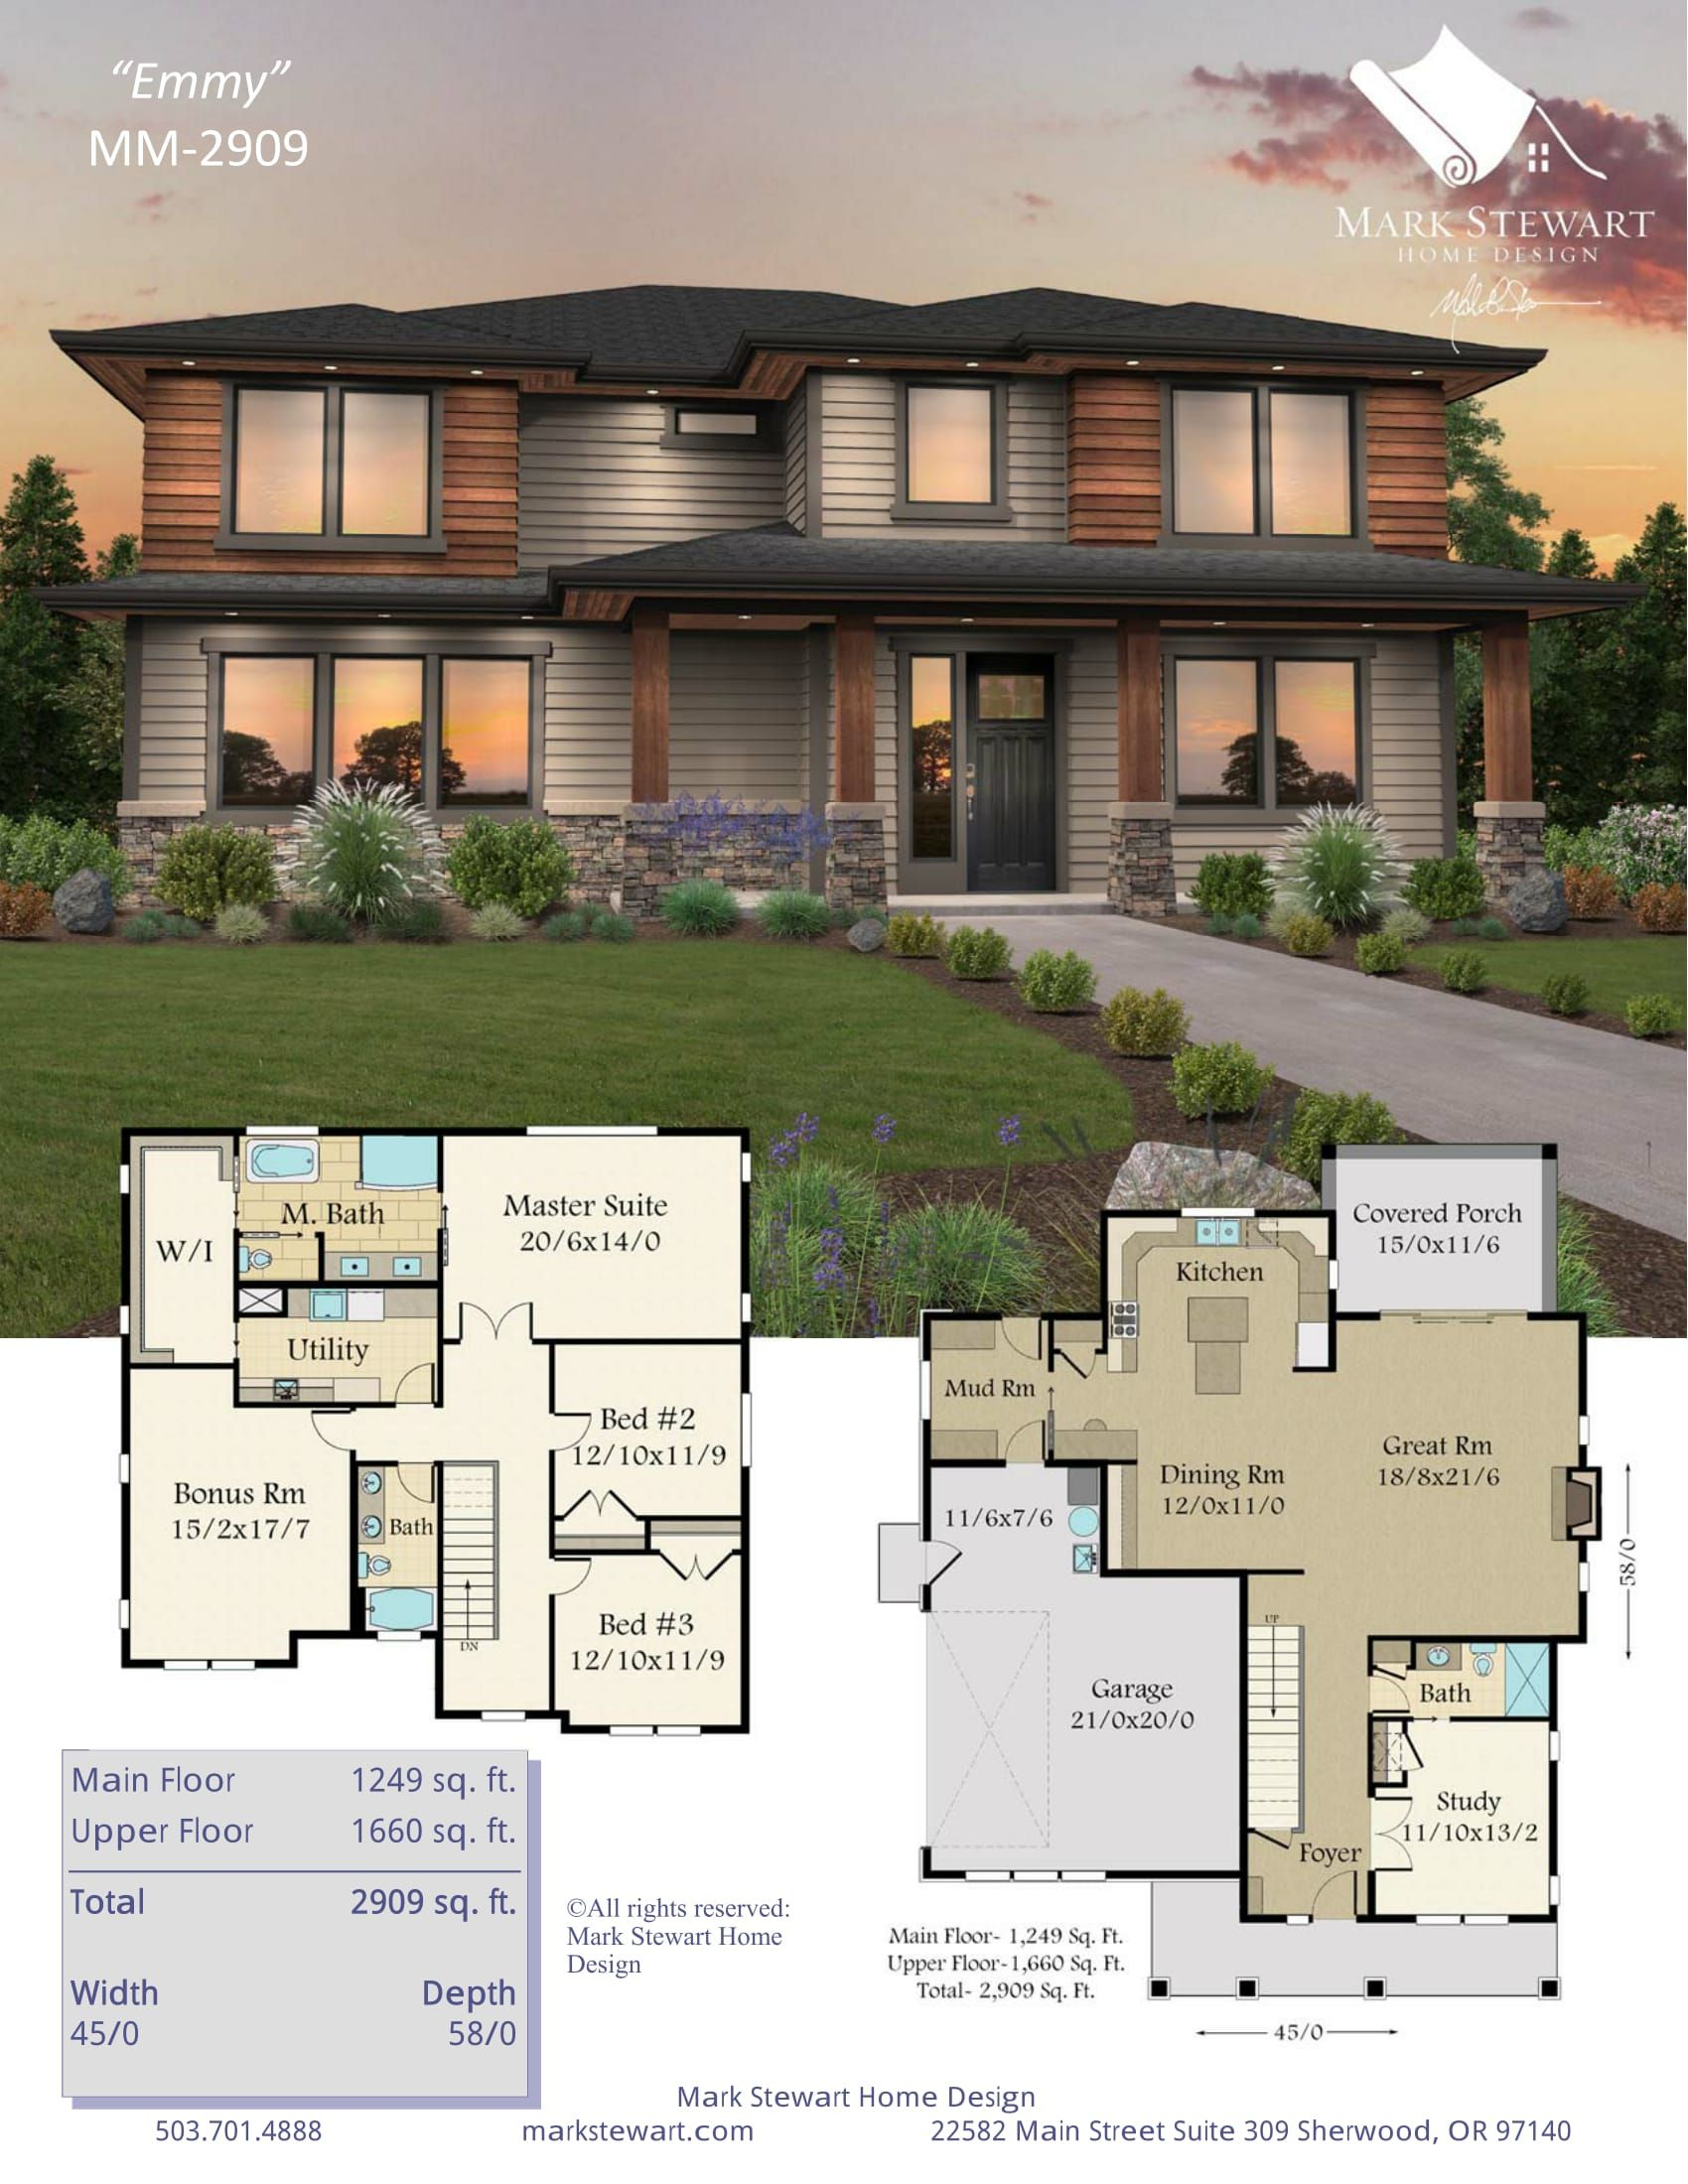 Emmy By Mark Stewart Home Design Family House Plans Sims House Plans Modern House Plans